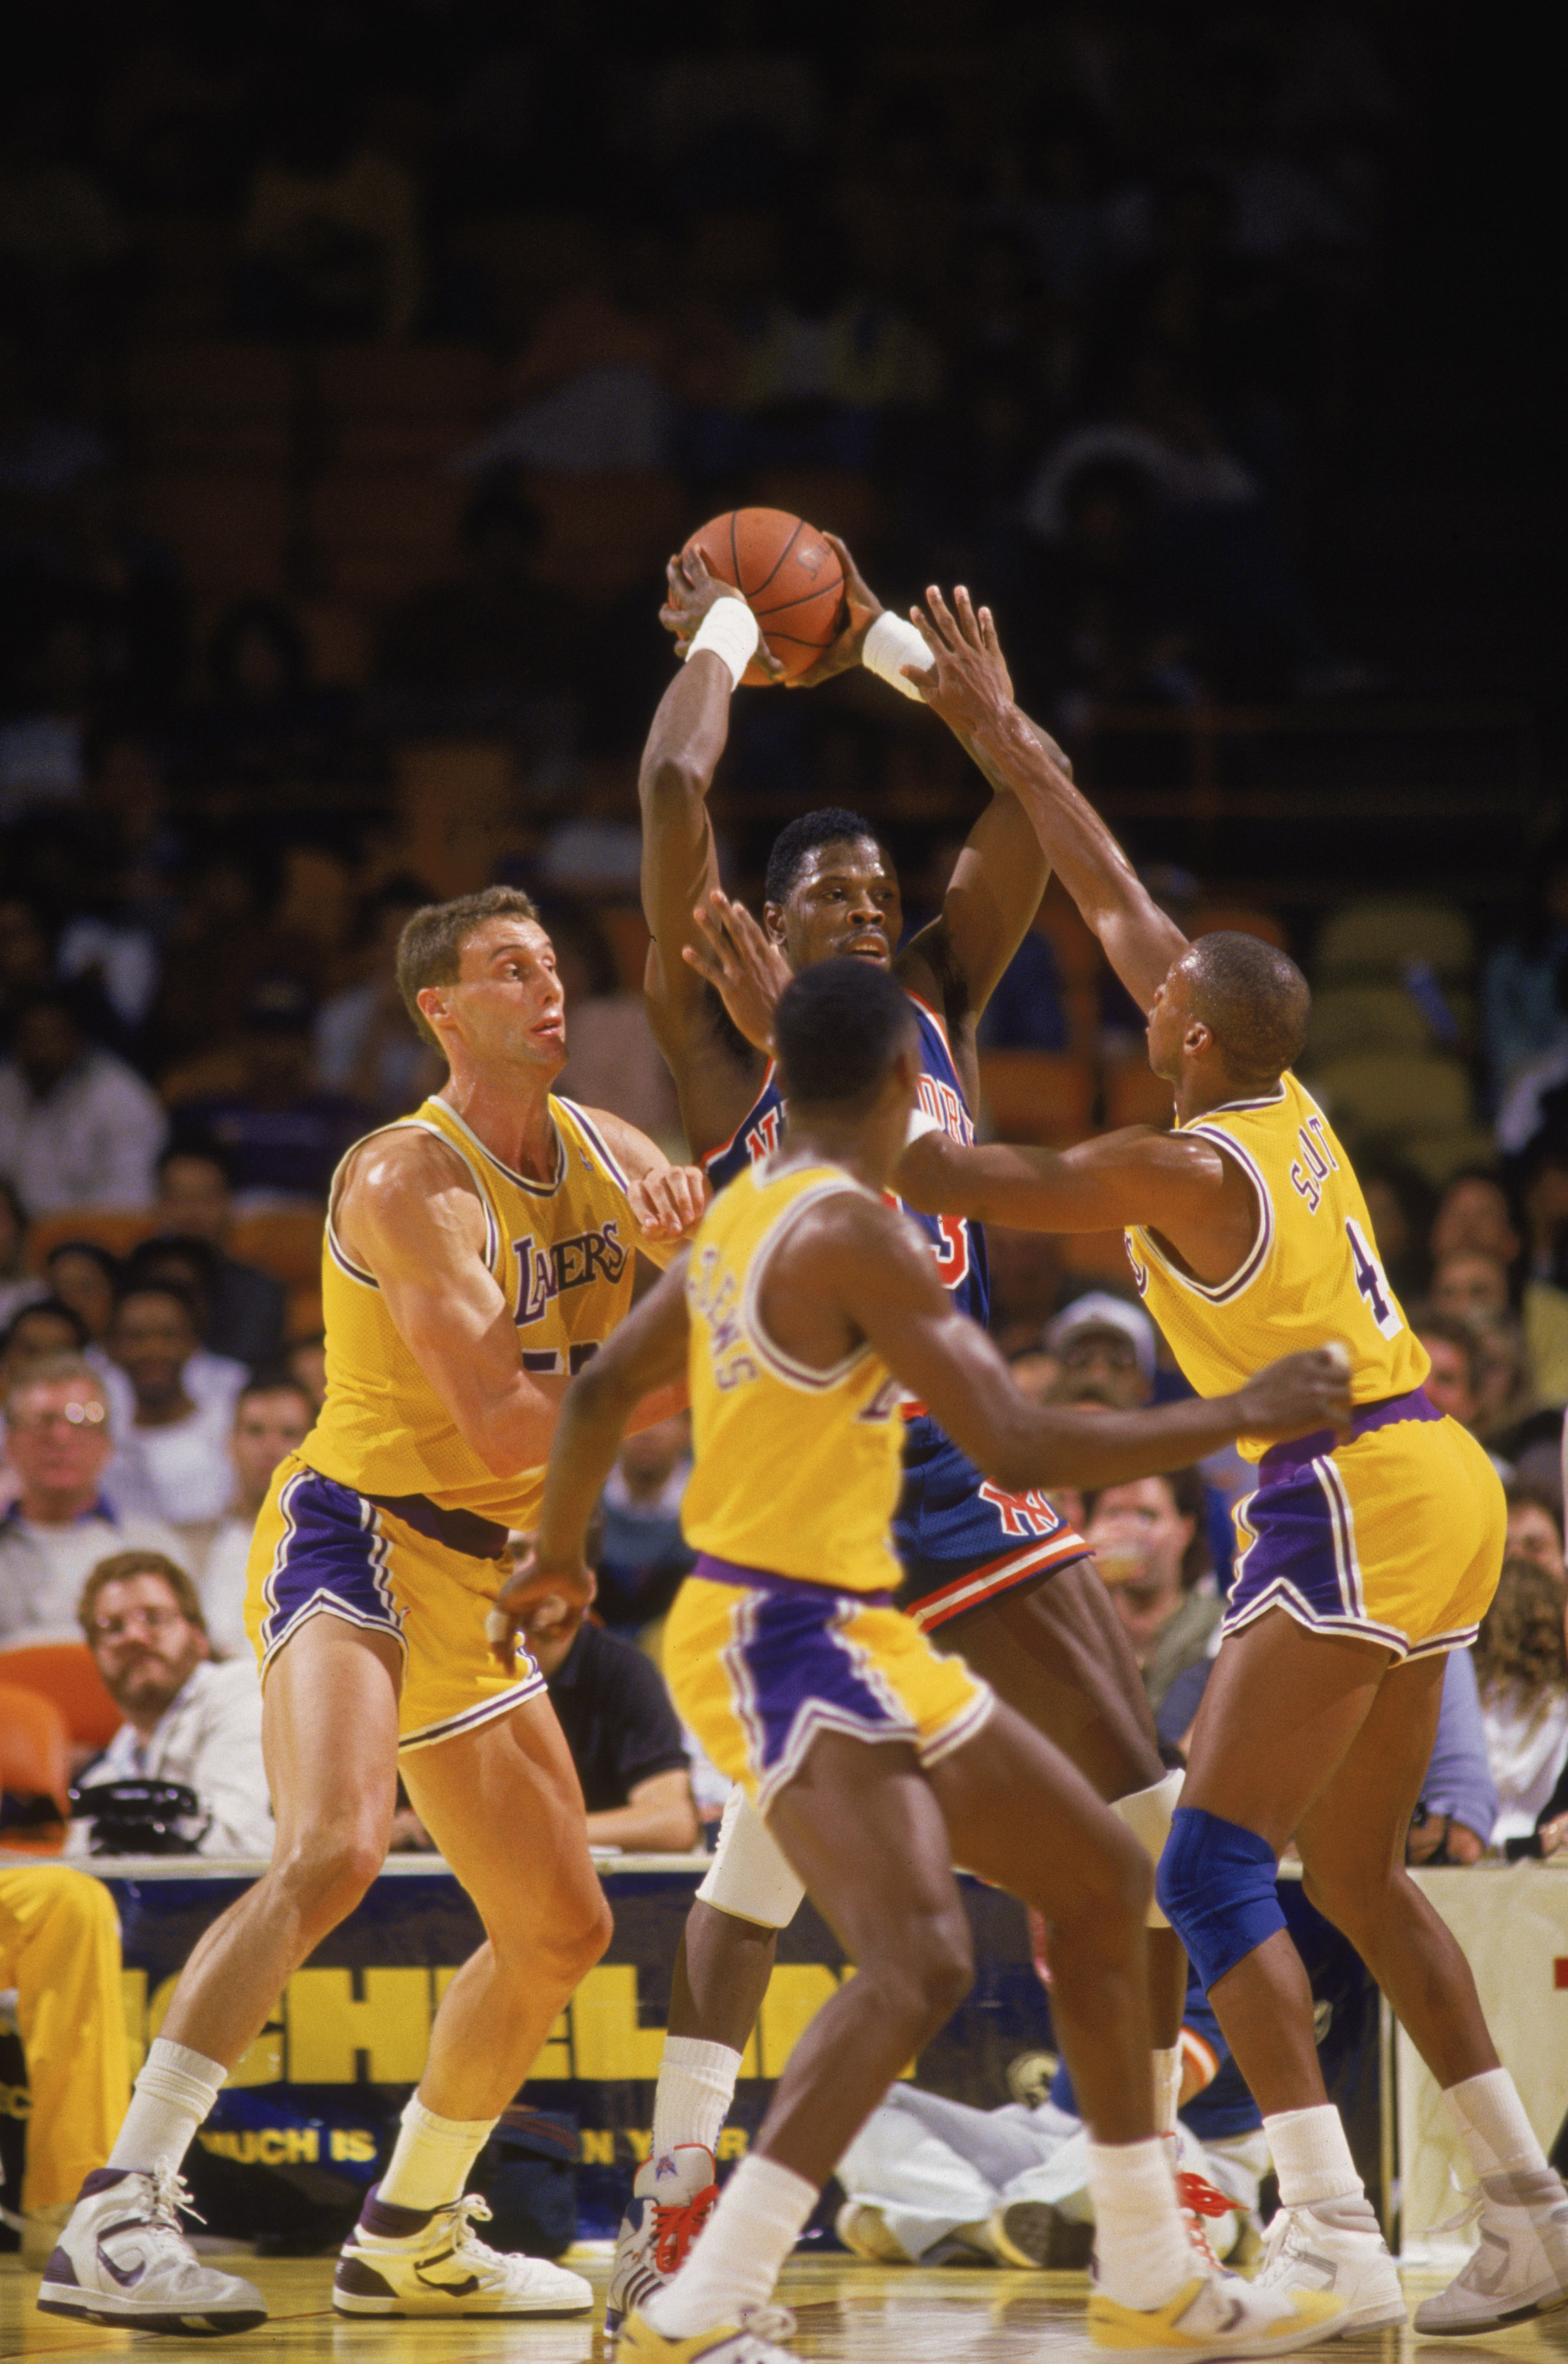 LOS ANGELES - 1987:  Patrick Ewing #33 of the New York Knicks passes out of a double team during an NBA game against the Los Angeles Lakers at the Great Western Forum in Los Angeles, California in 1987. (Photo by: Mike Powell/Getty Images)